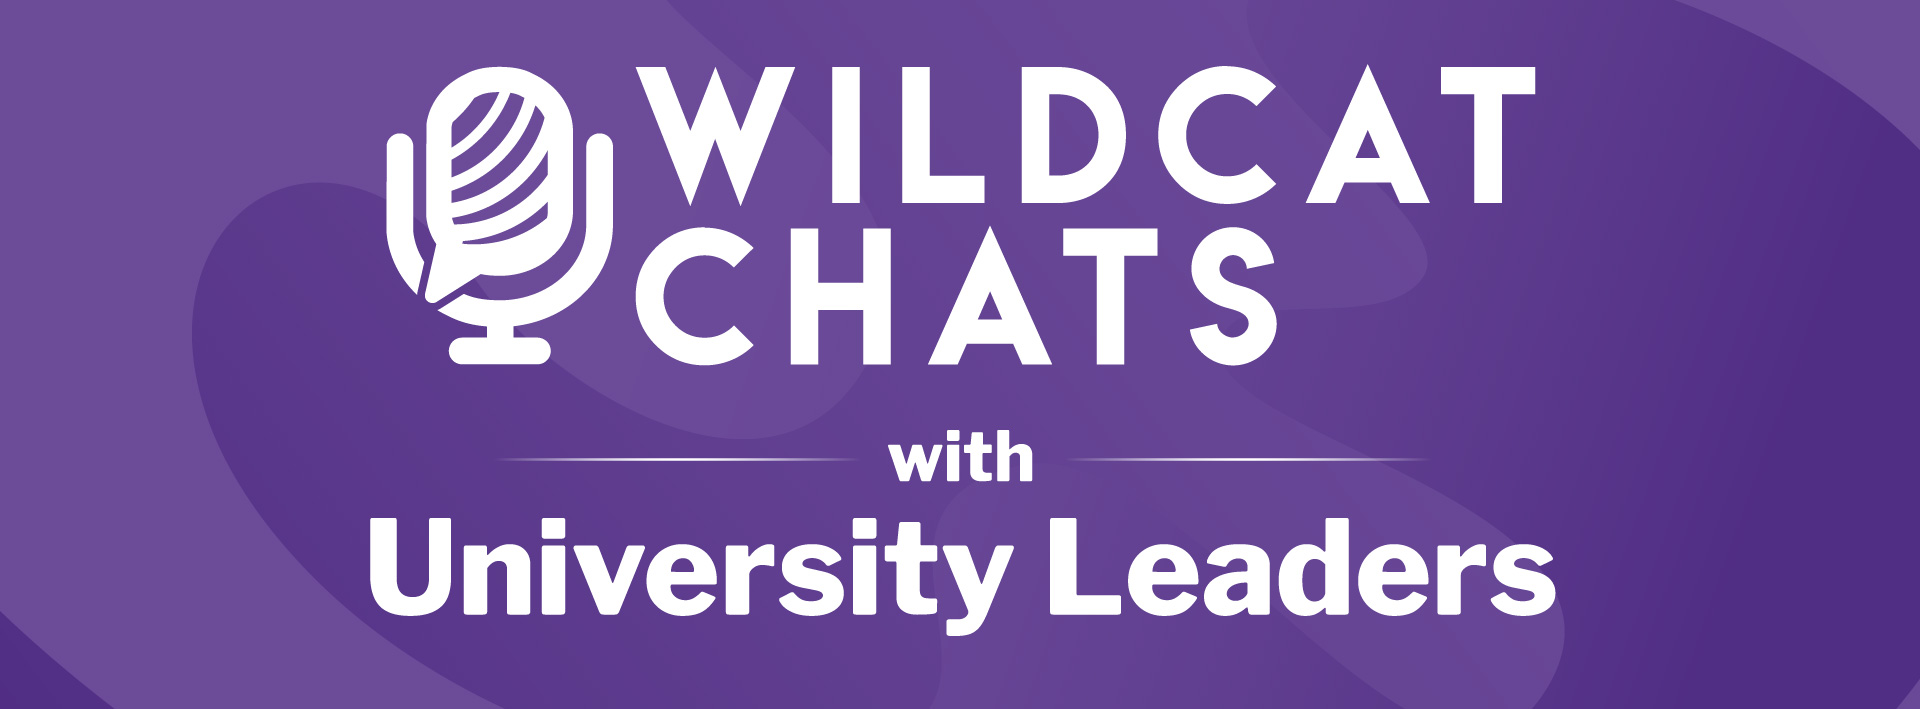 Join us virtually on Sept. 29